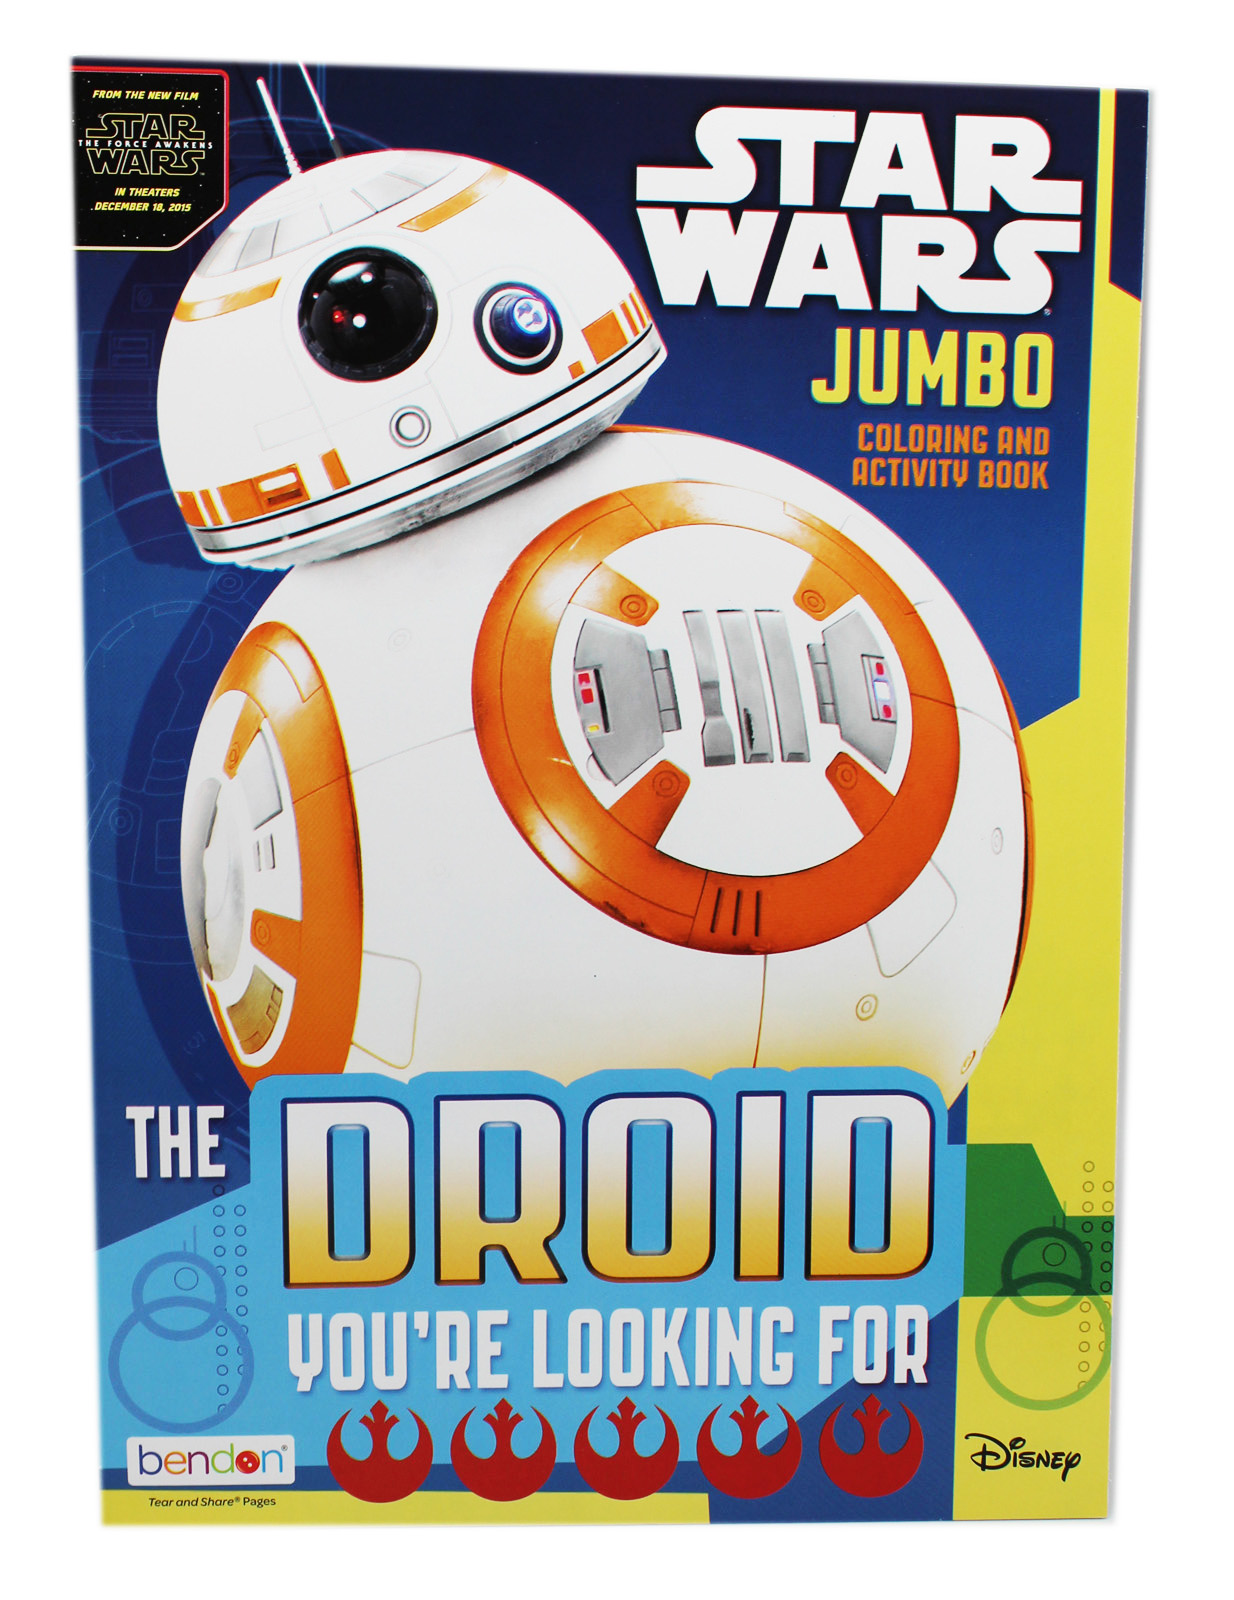 Star Wars Jumbo Coloring & Activity Book: The Droid You're Looking For